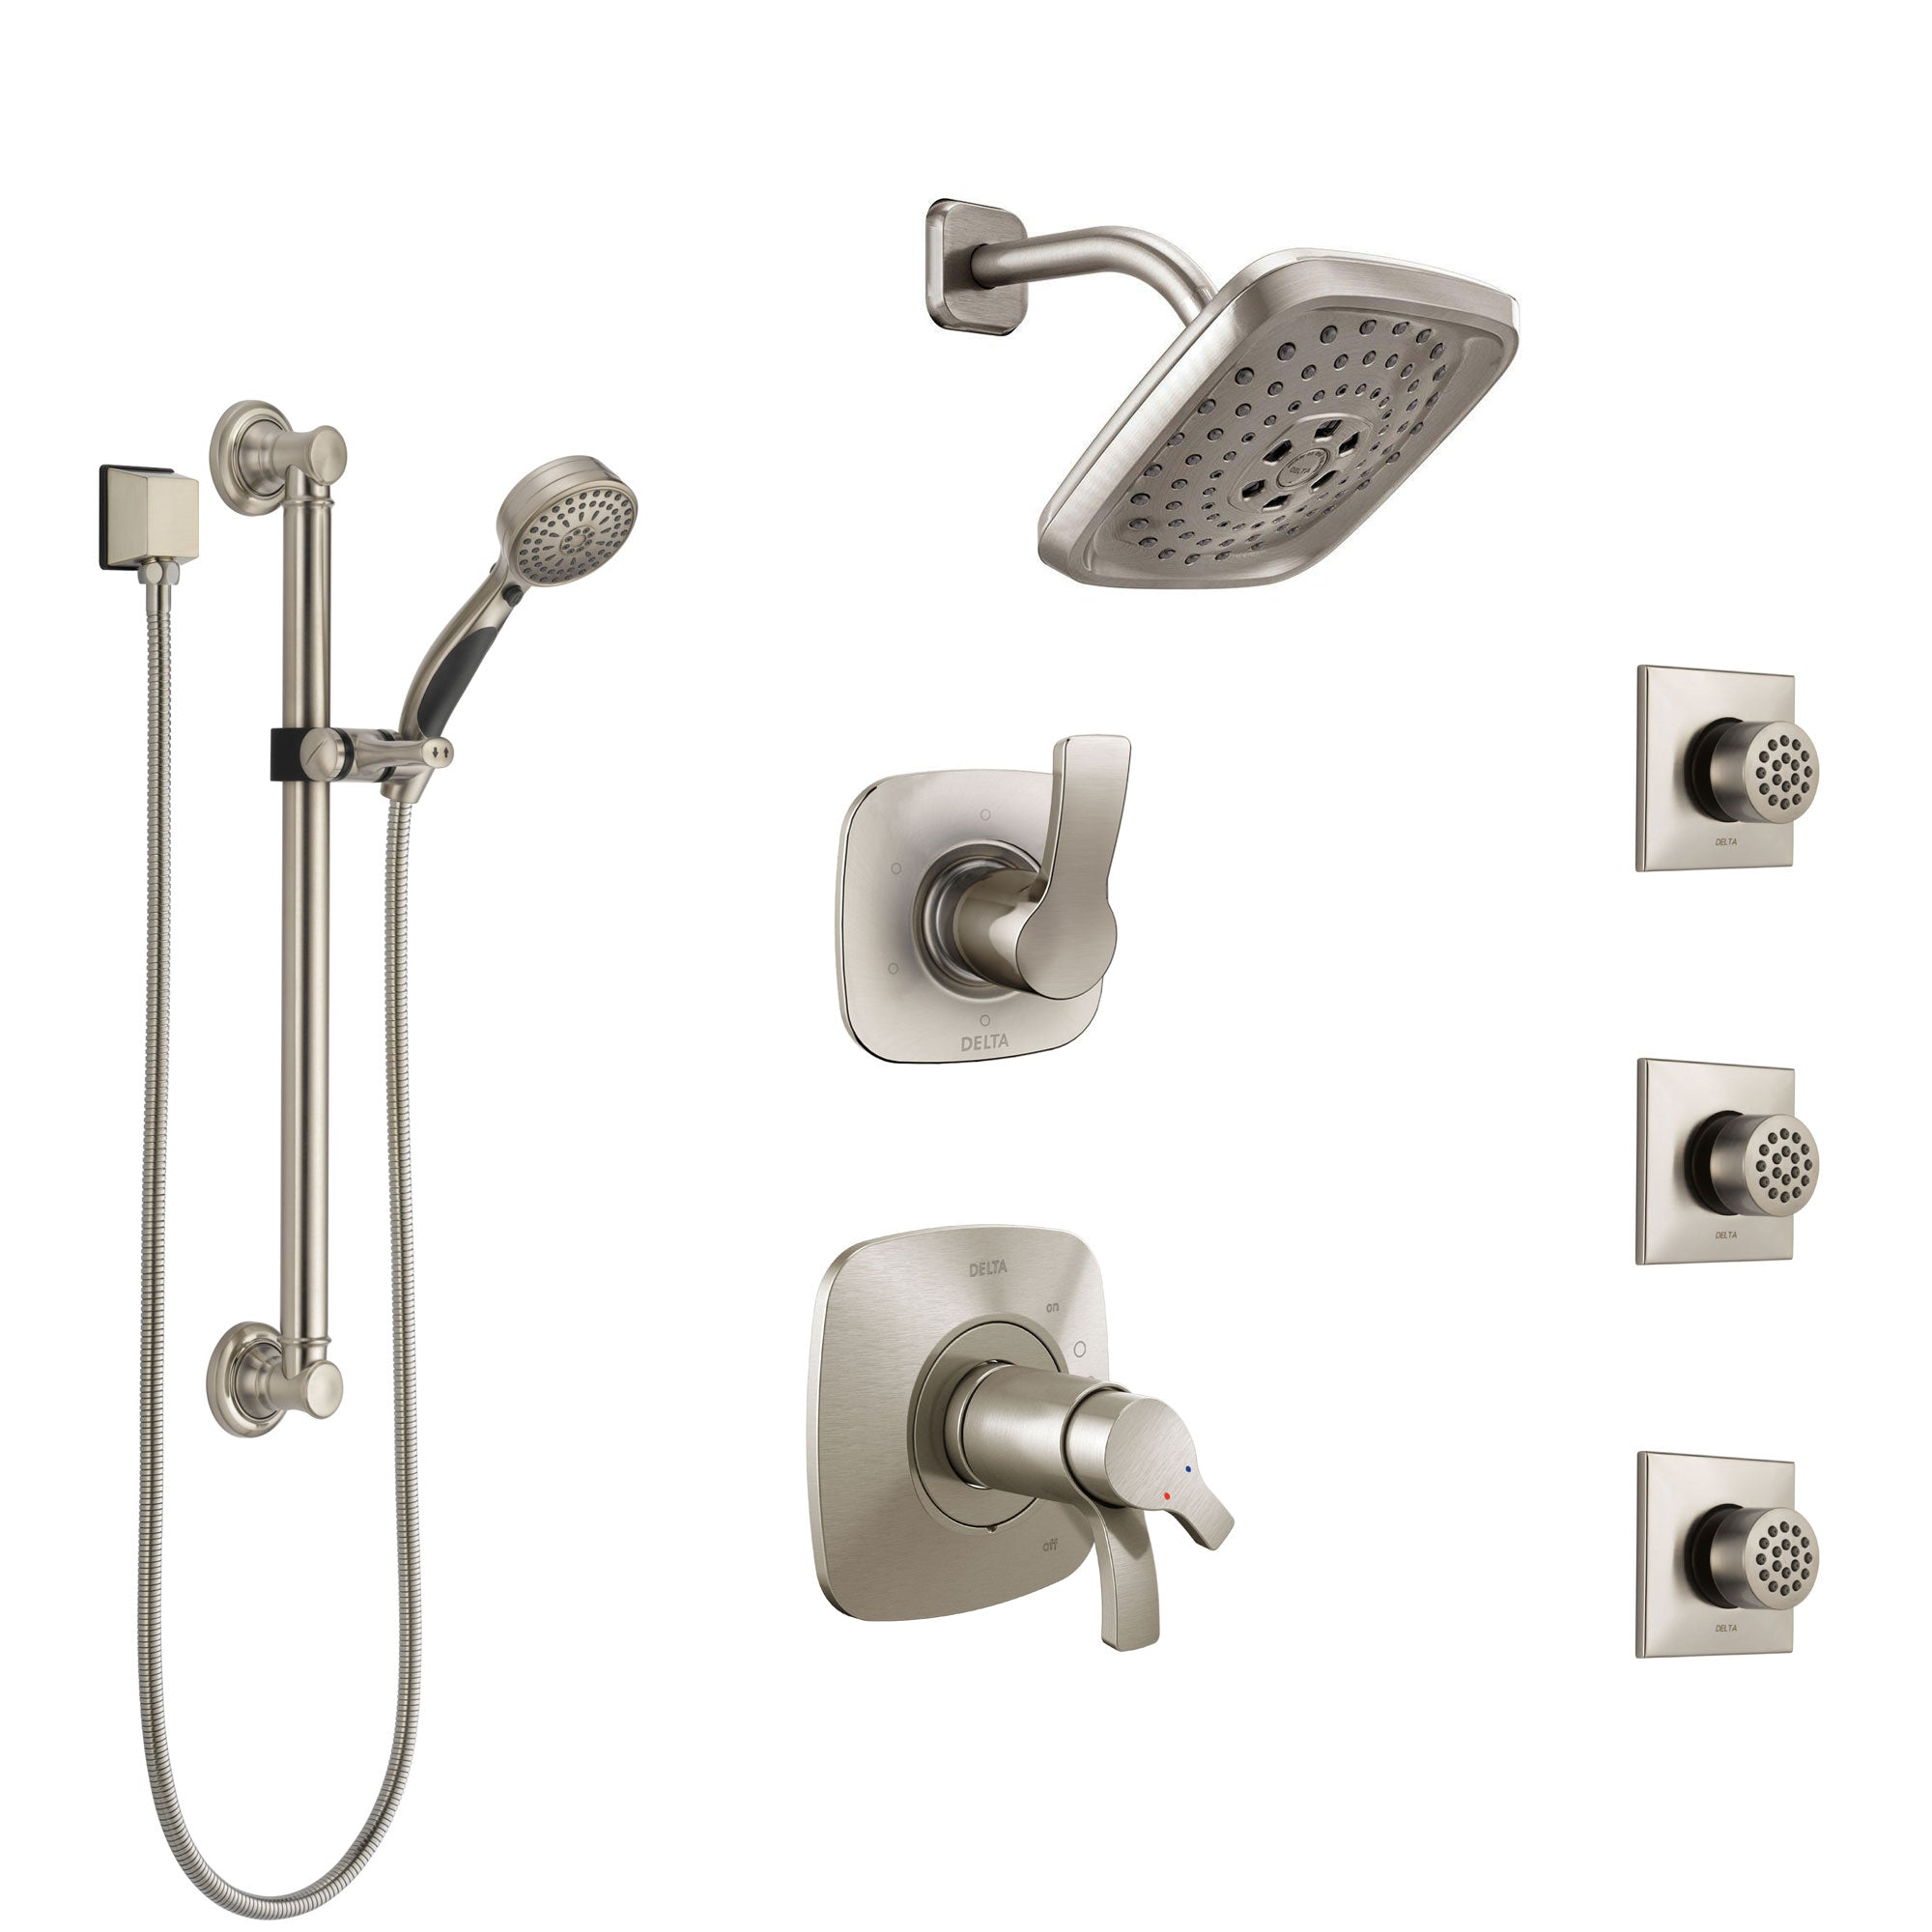 Delta Tesla Dual Thermostatic Control Stainless Steel Finish Shower System, Diverter, Showerhead, 3 Body Sprays, and Grab Bar Hand Shower SS17T2521SS2